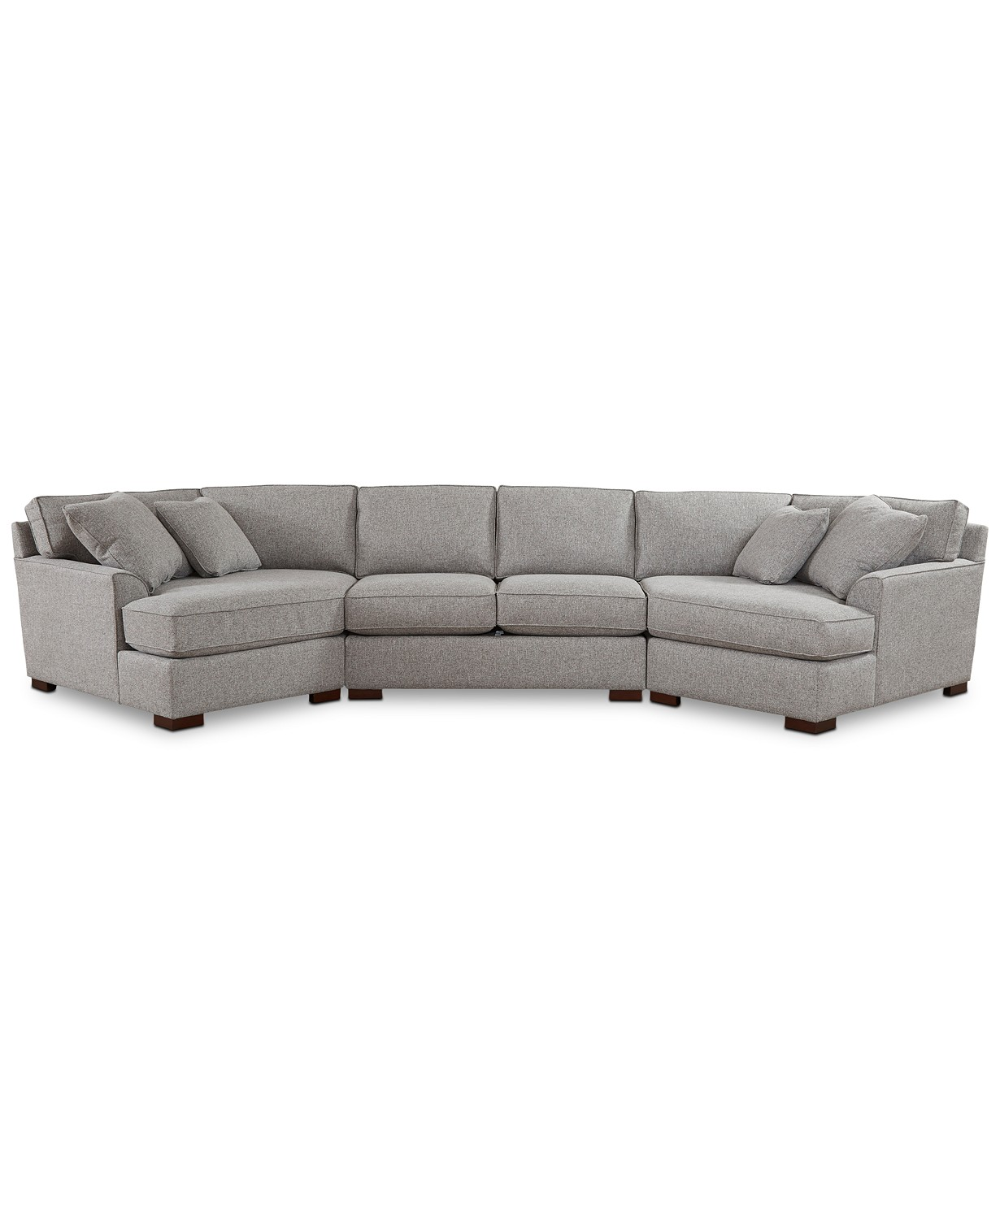 Furniture Closeout Carena 3 Pc Fabric Sectional Sofa With Double Cuddler Chaise And Armless Loveseat Created For Macy S Reviews Furniture Macy S In 2020 With Images Fabric Sectional Sofas Fabric